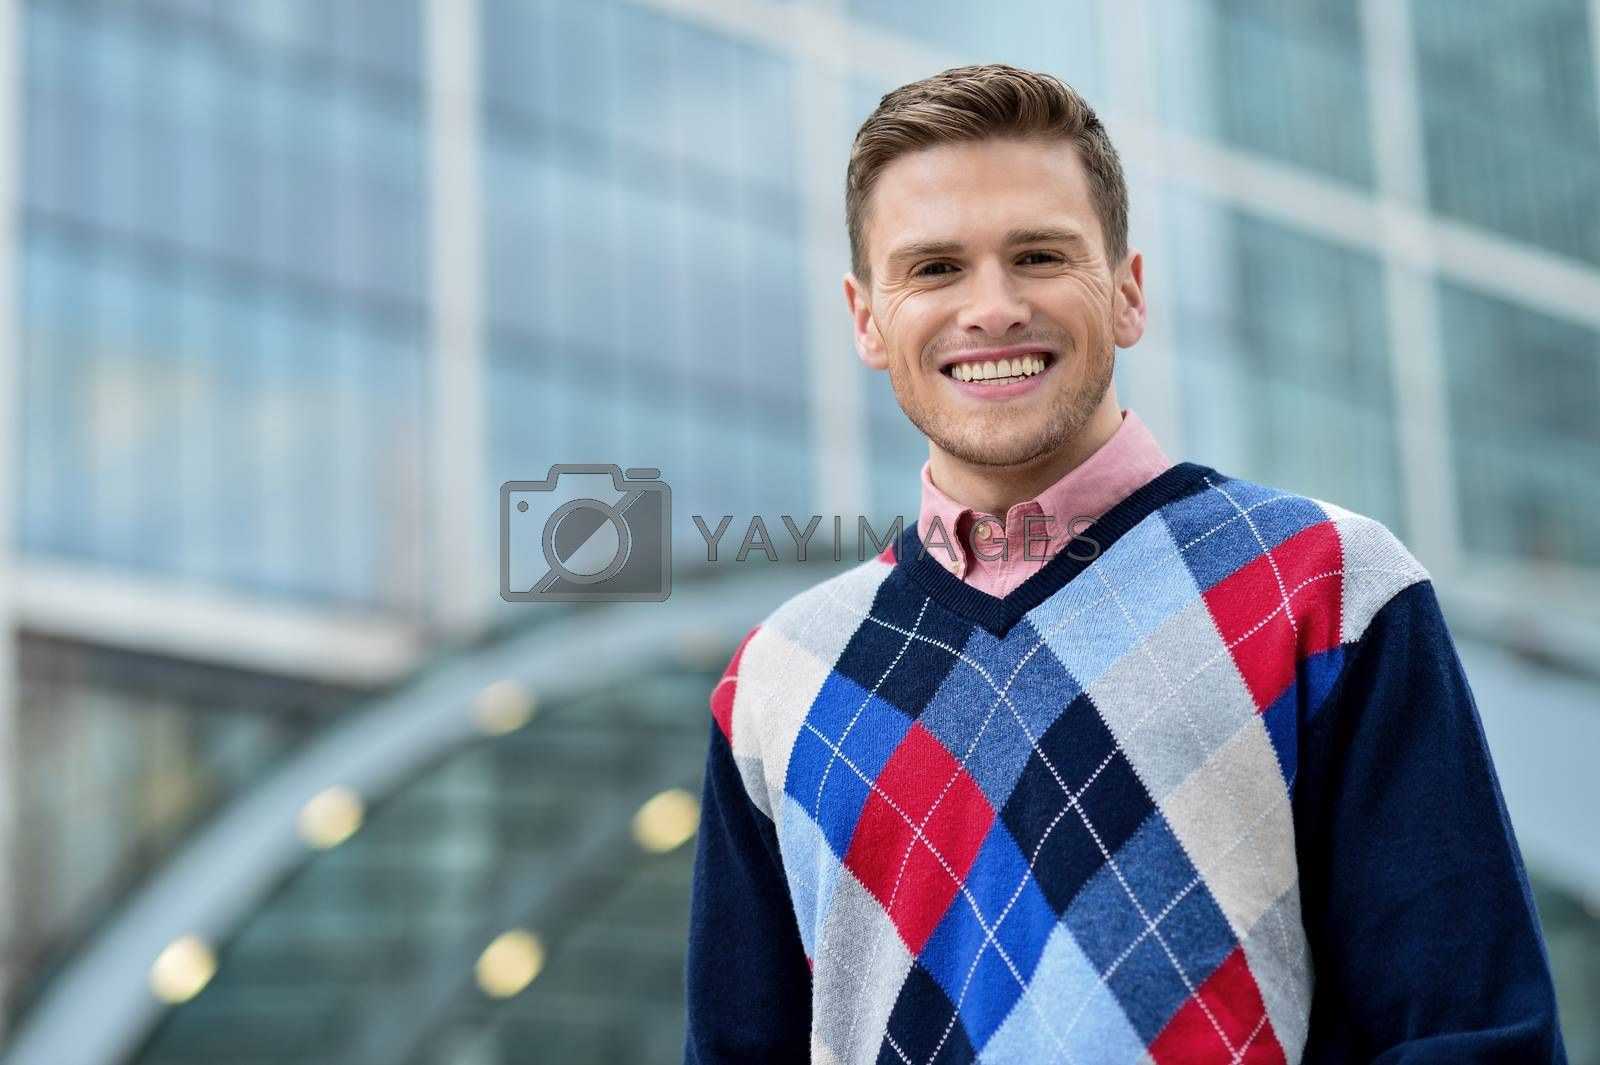 Royalty free image of Young man standing outside modern building by stockyimages